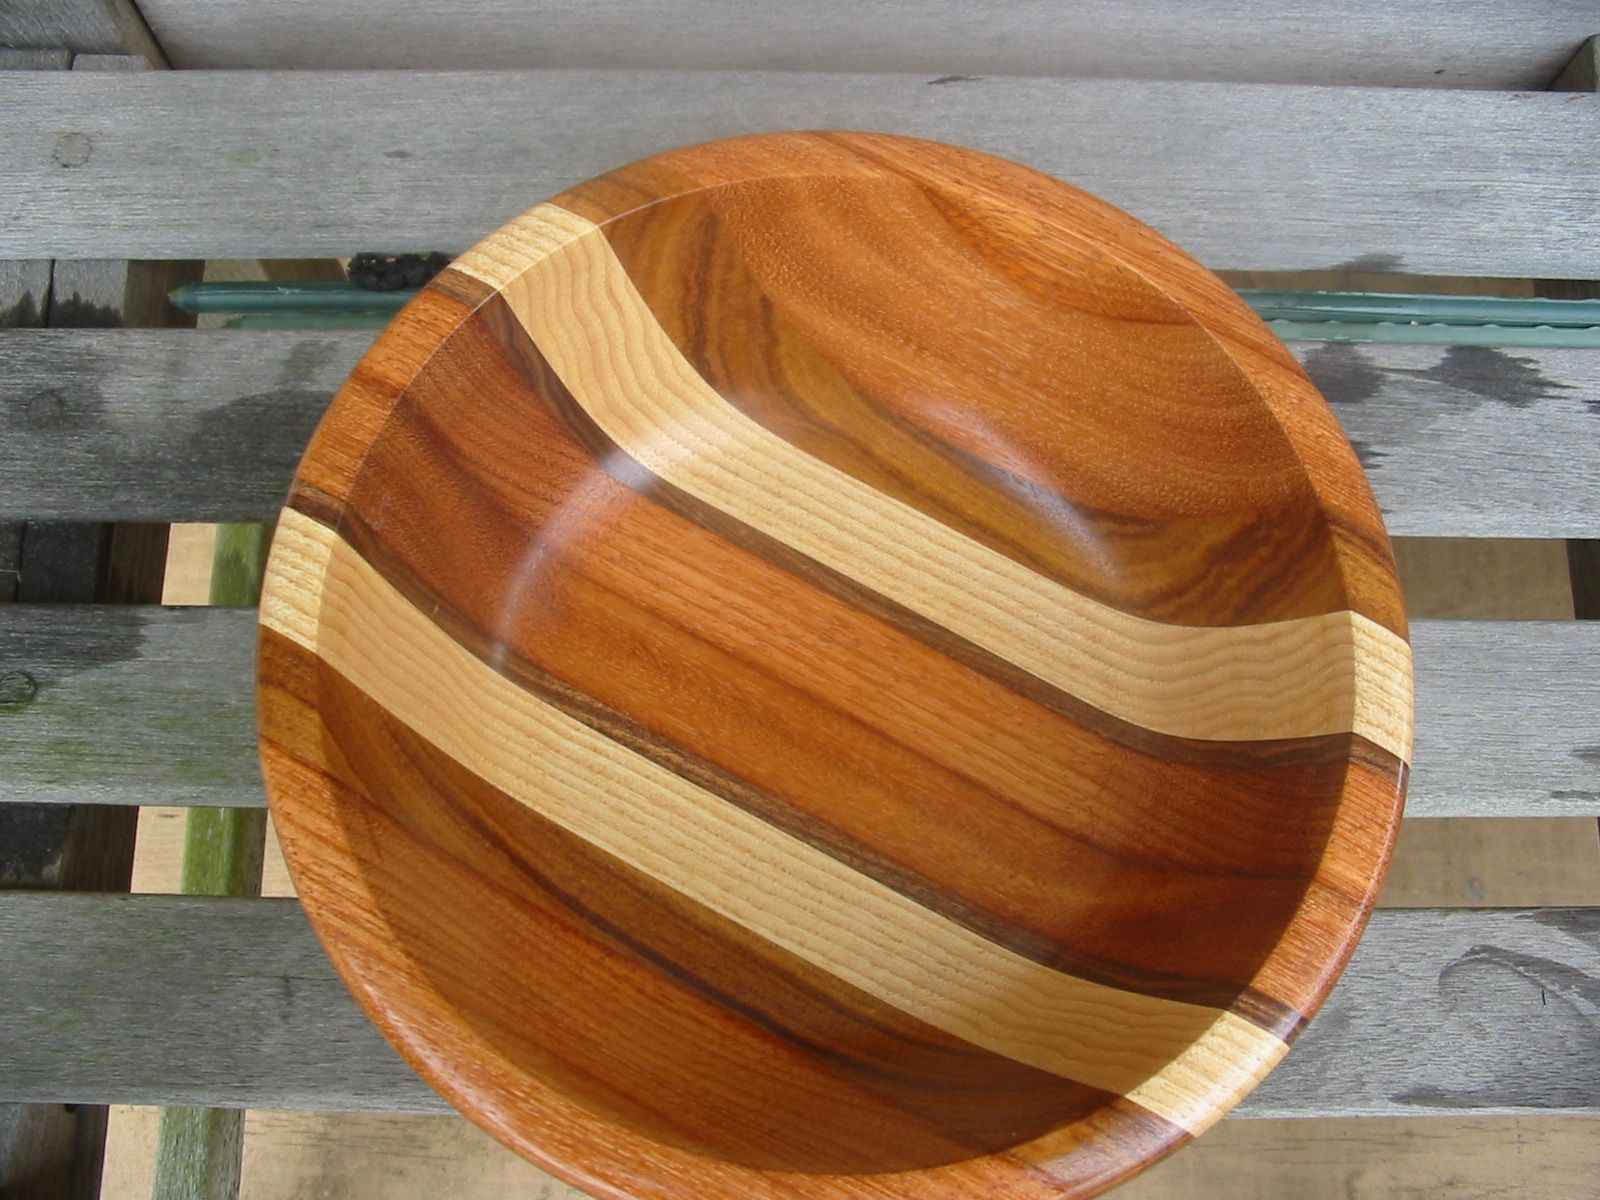 Selkie Wood Works Tgif Project Updates